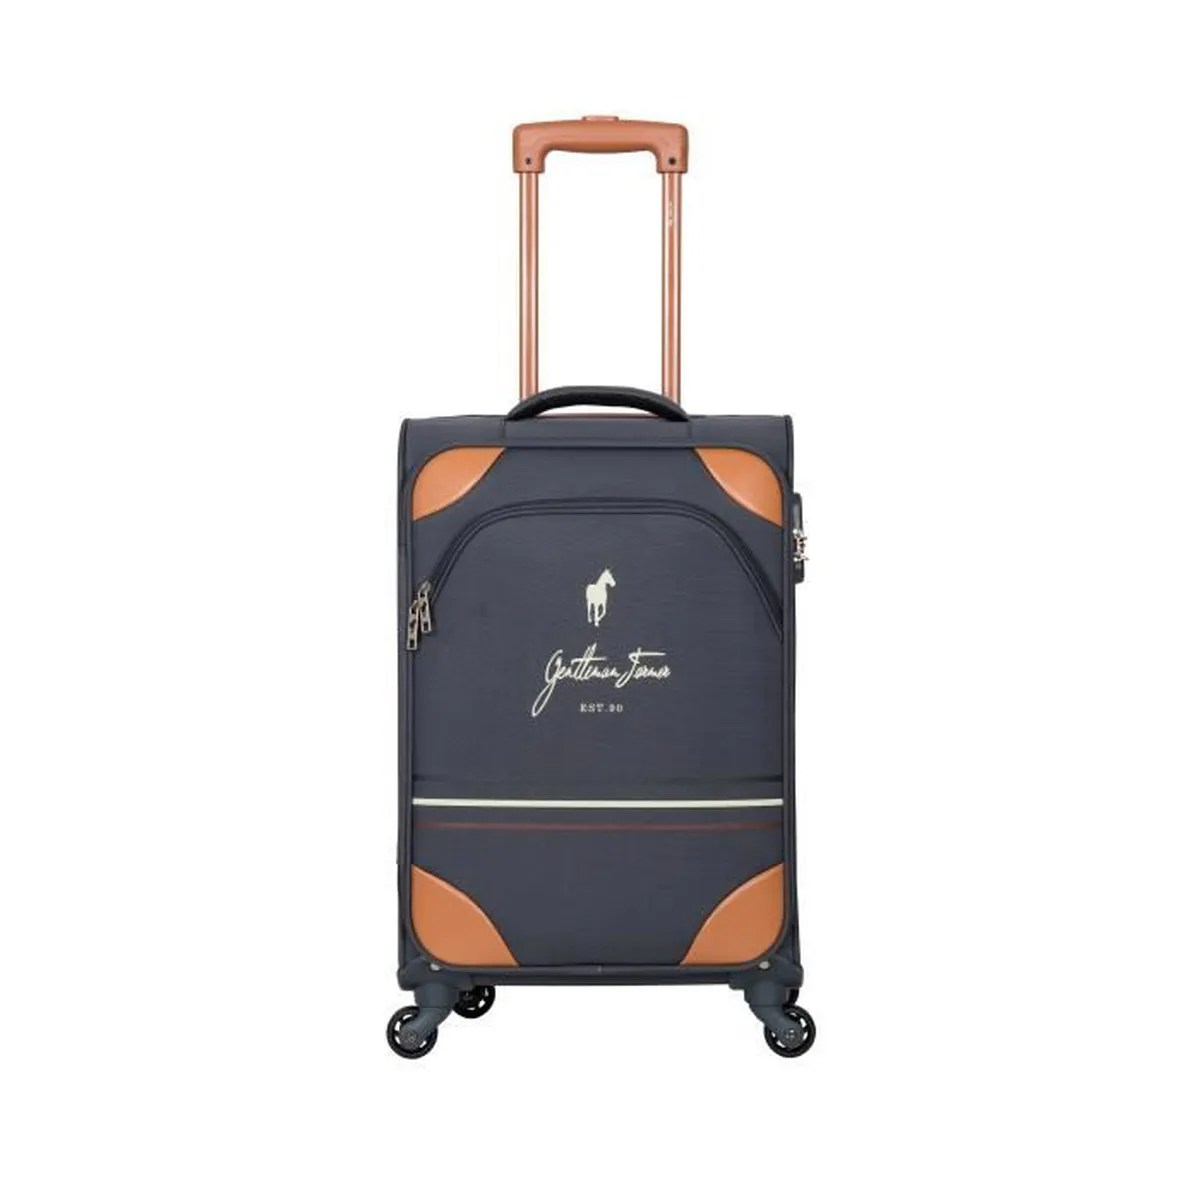 Bagage Week End Valise Weekend Polyester Souple 65cm Matthew Gris Fonce